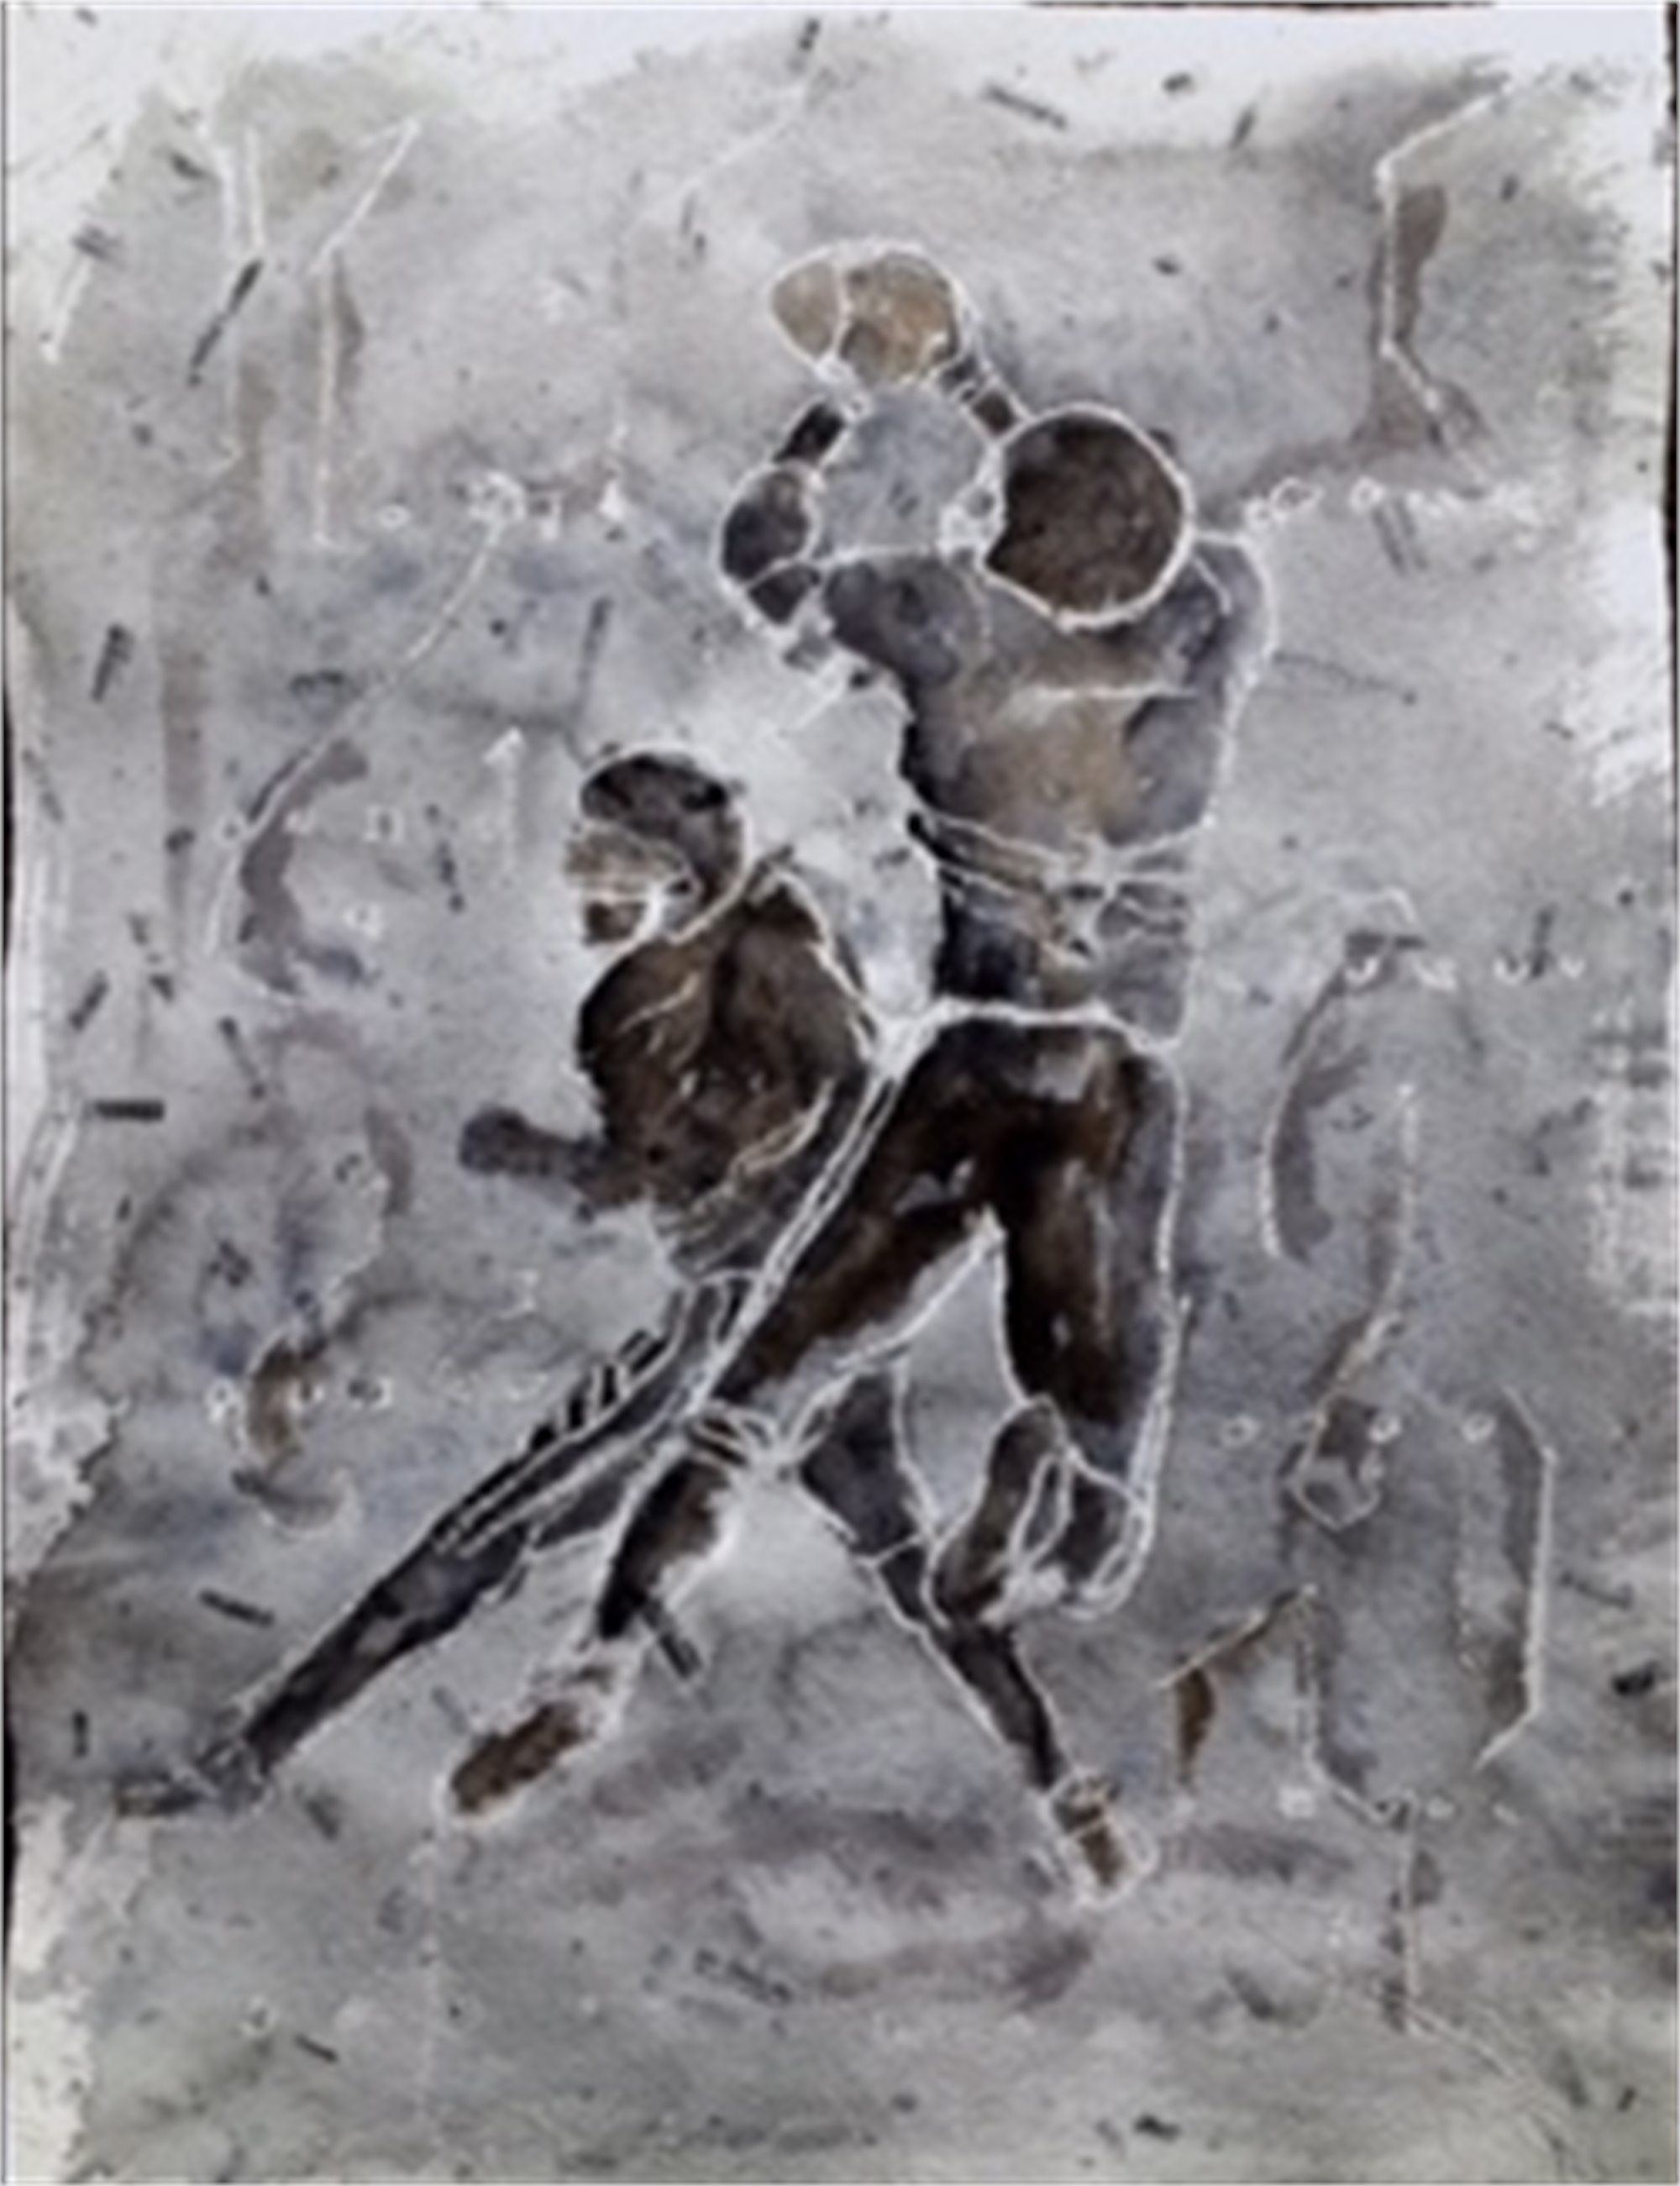 Commission Available in Your Team Colors- Offensive Winning Catch by Gary Welton